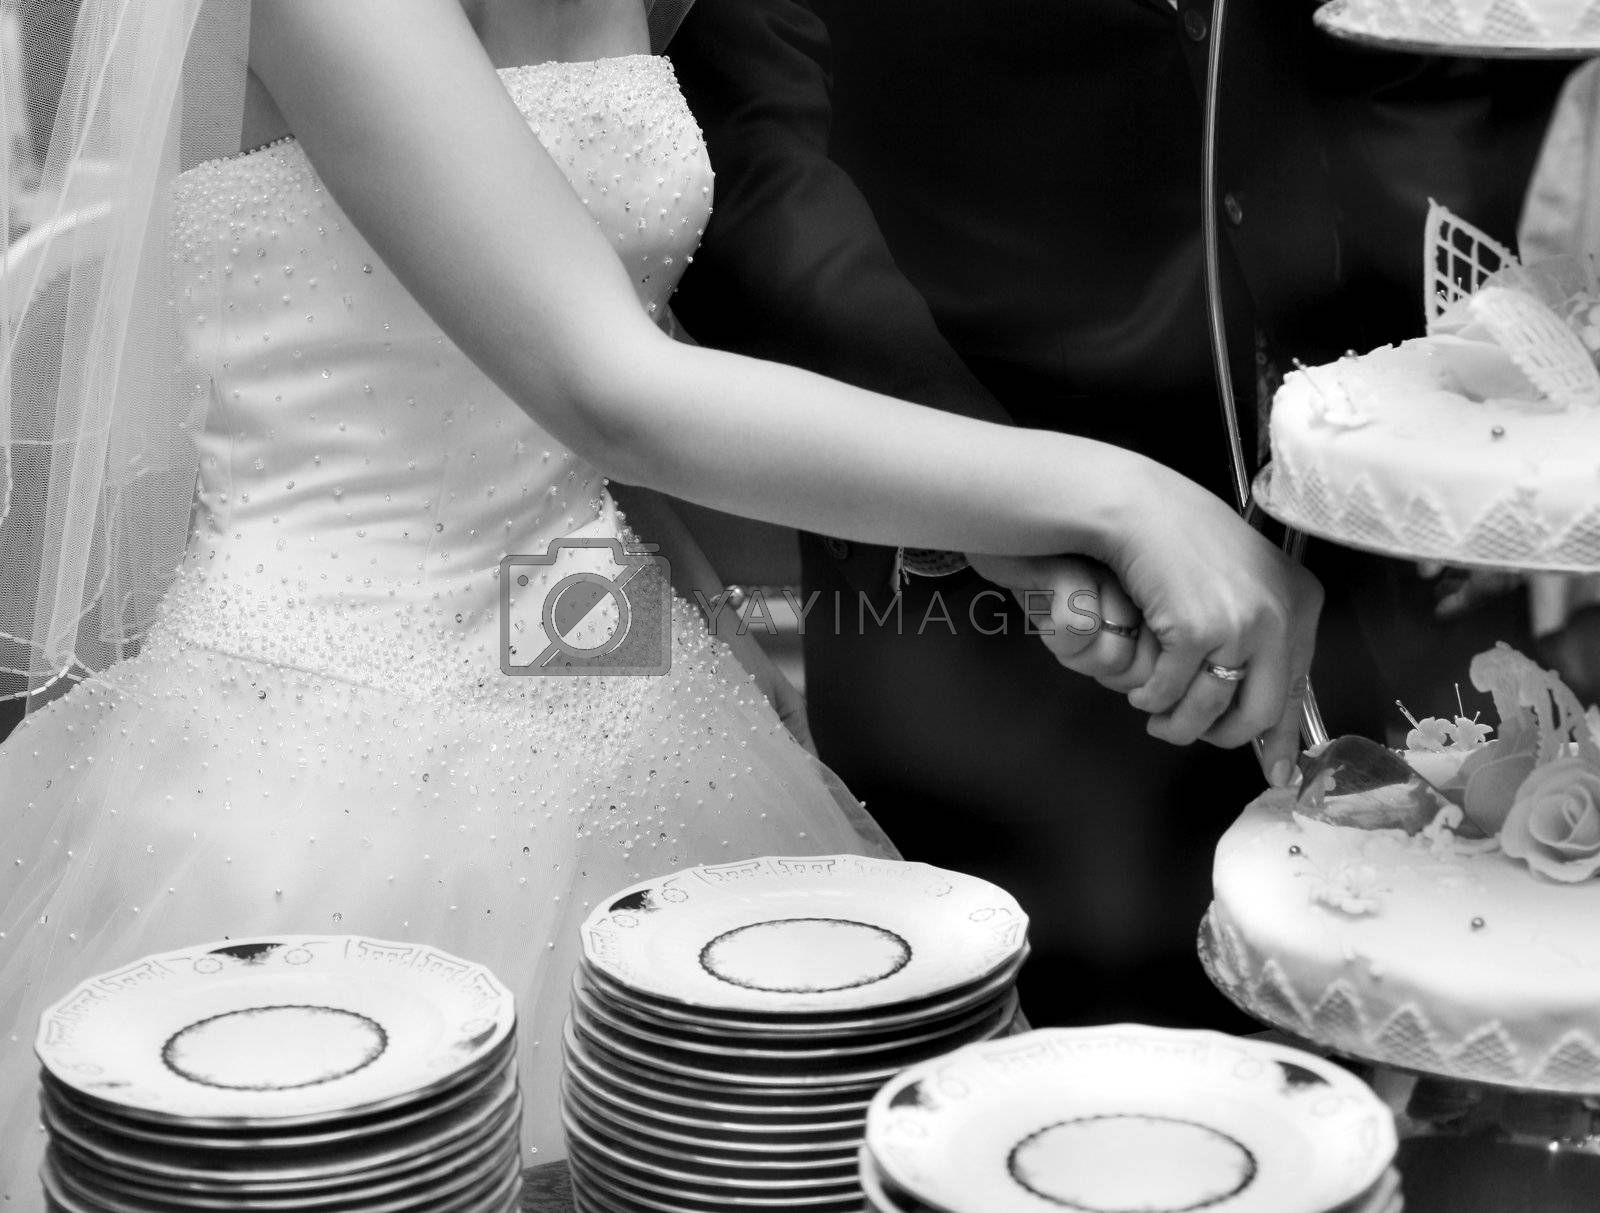 The groom and the bride cut a wedding pie